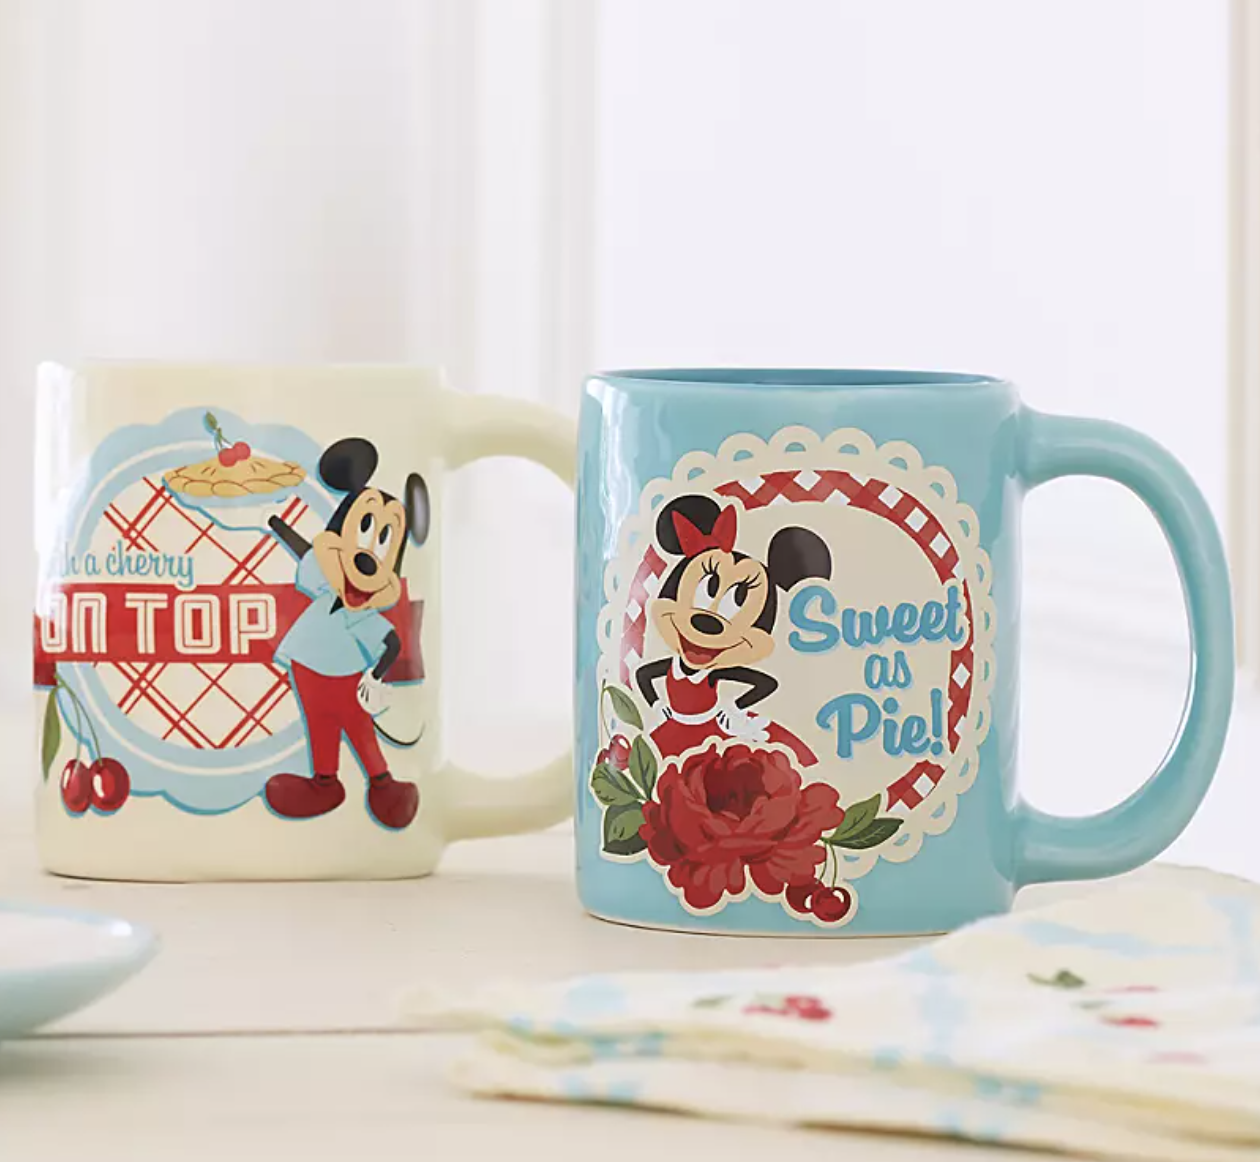 "an off white mug with a retro design of mickey on it that says ""with a cherry on top"" and a light blue mug with a retro design of minnie on it that says ""Sweet as pie!"" on it"